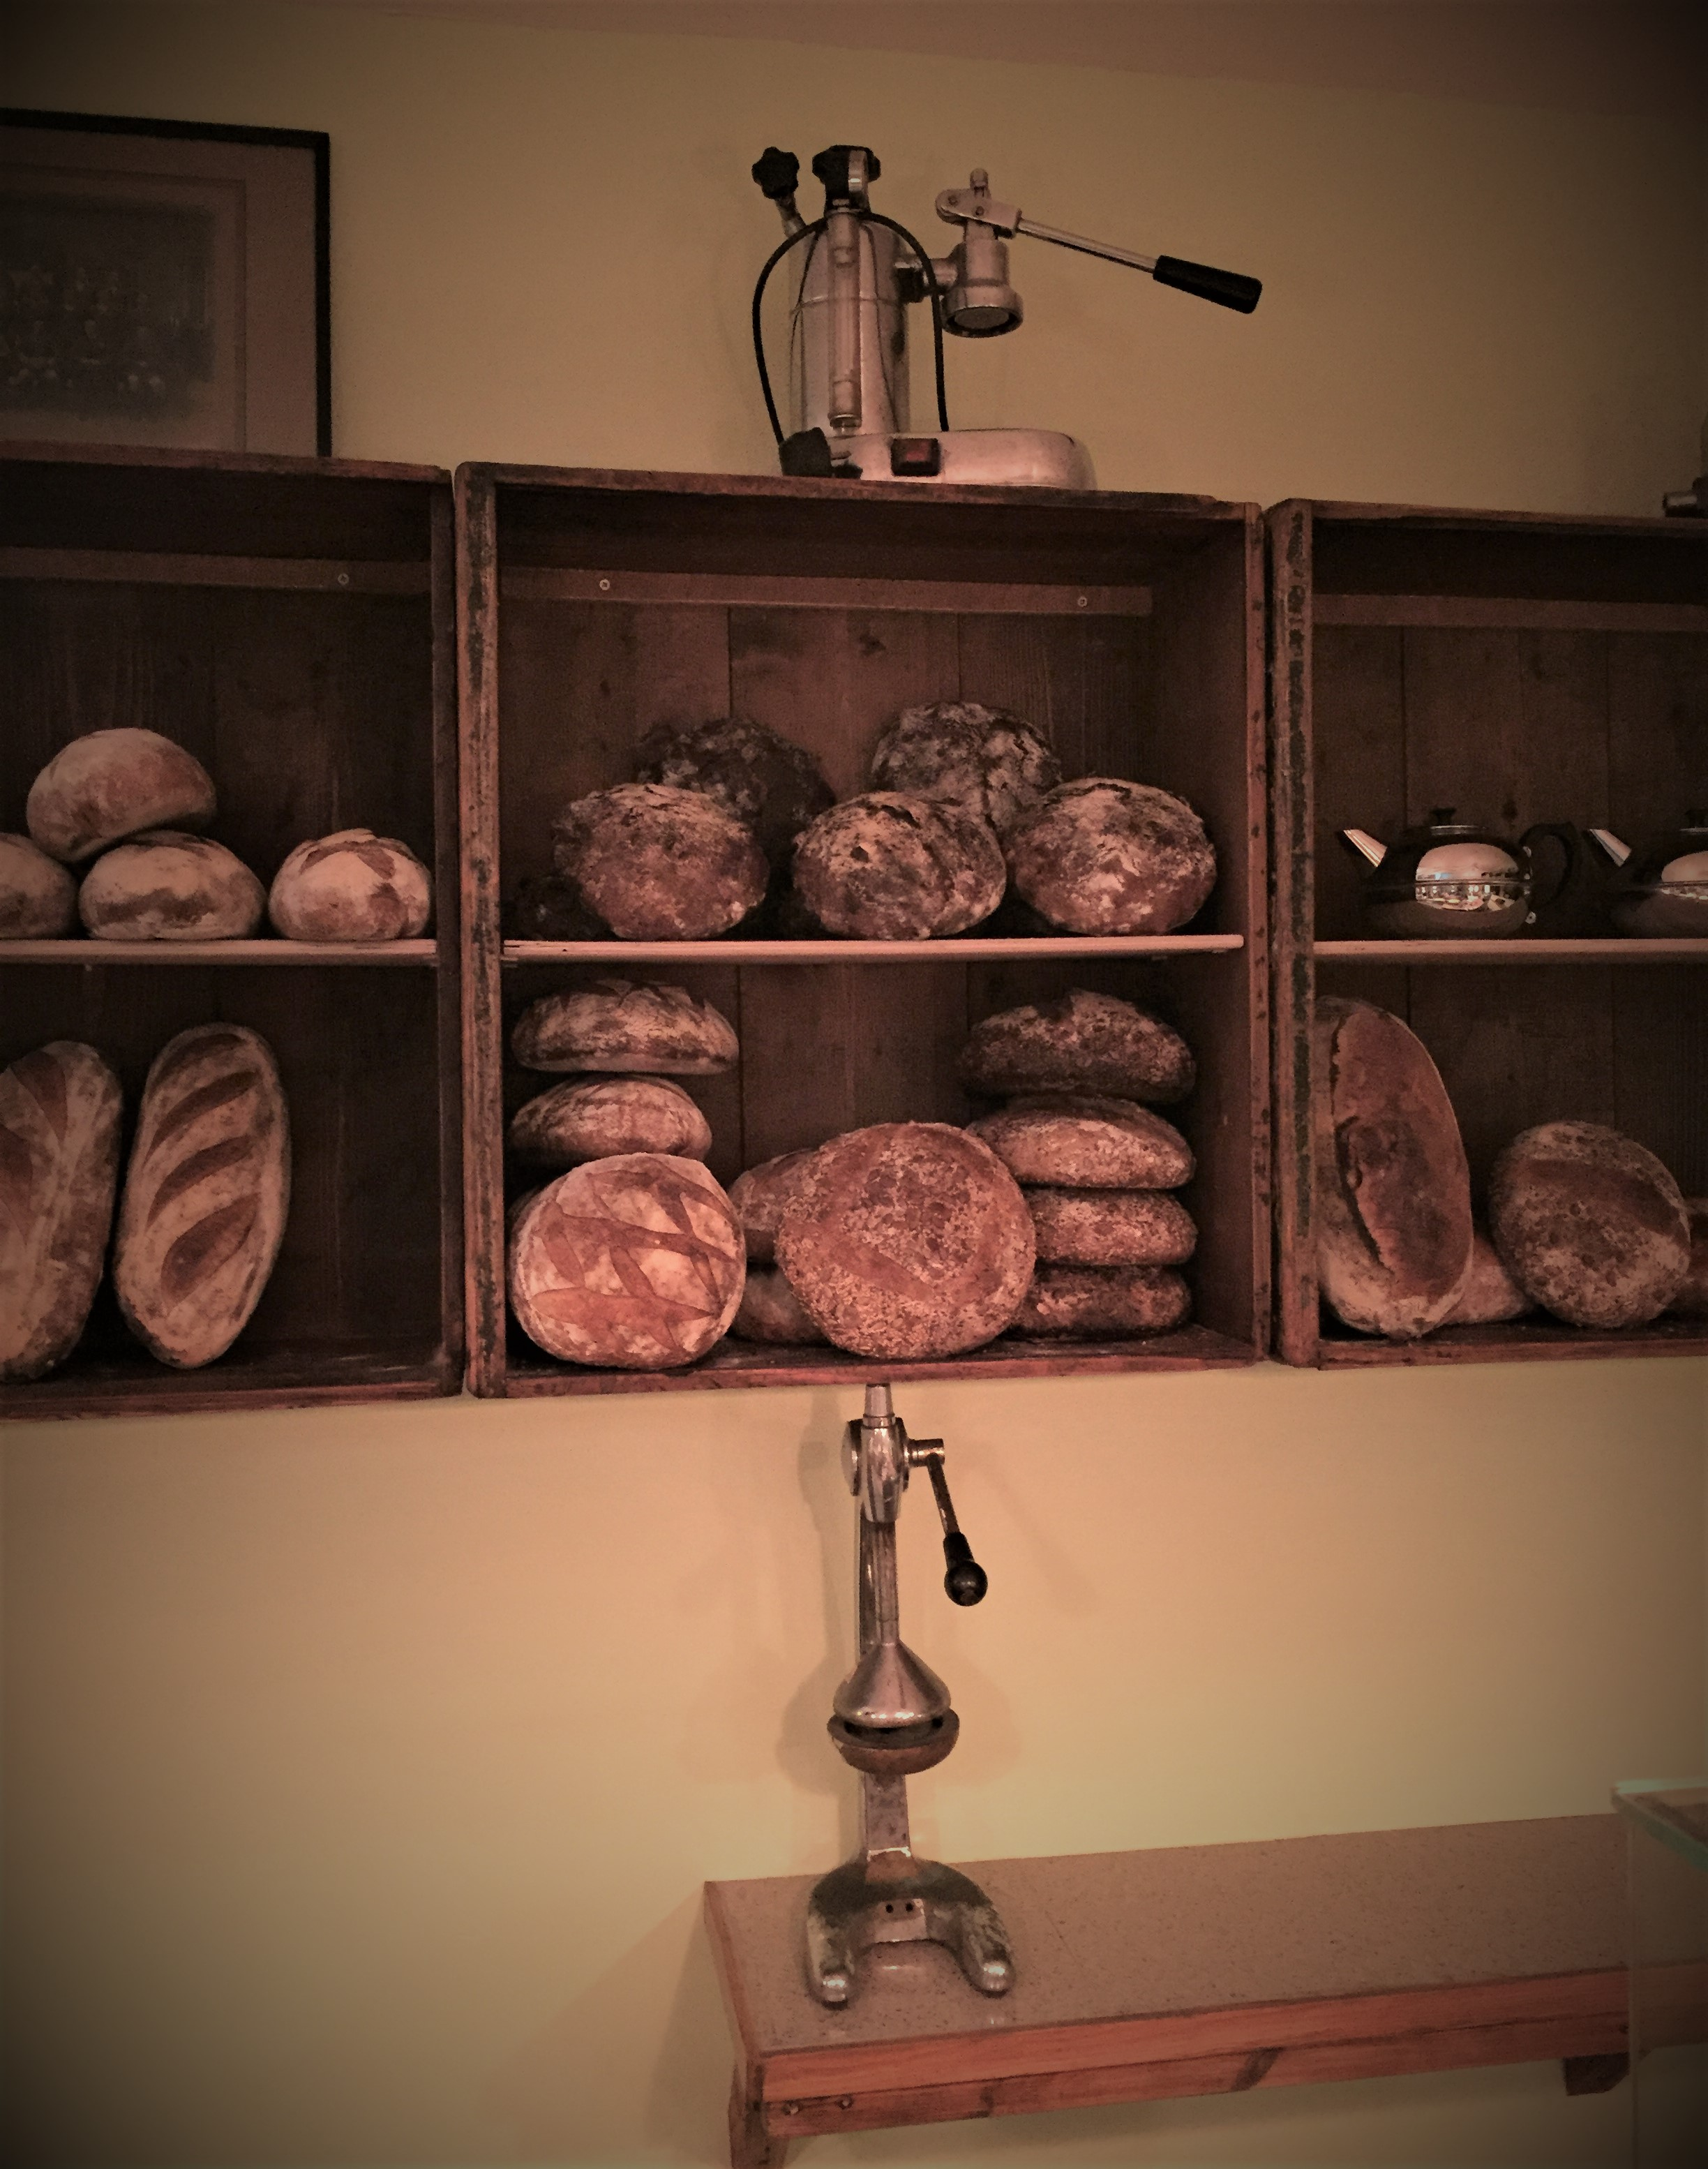 Cable Bakery & Roastery bread - kenningtonrunoff.com